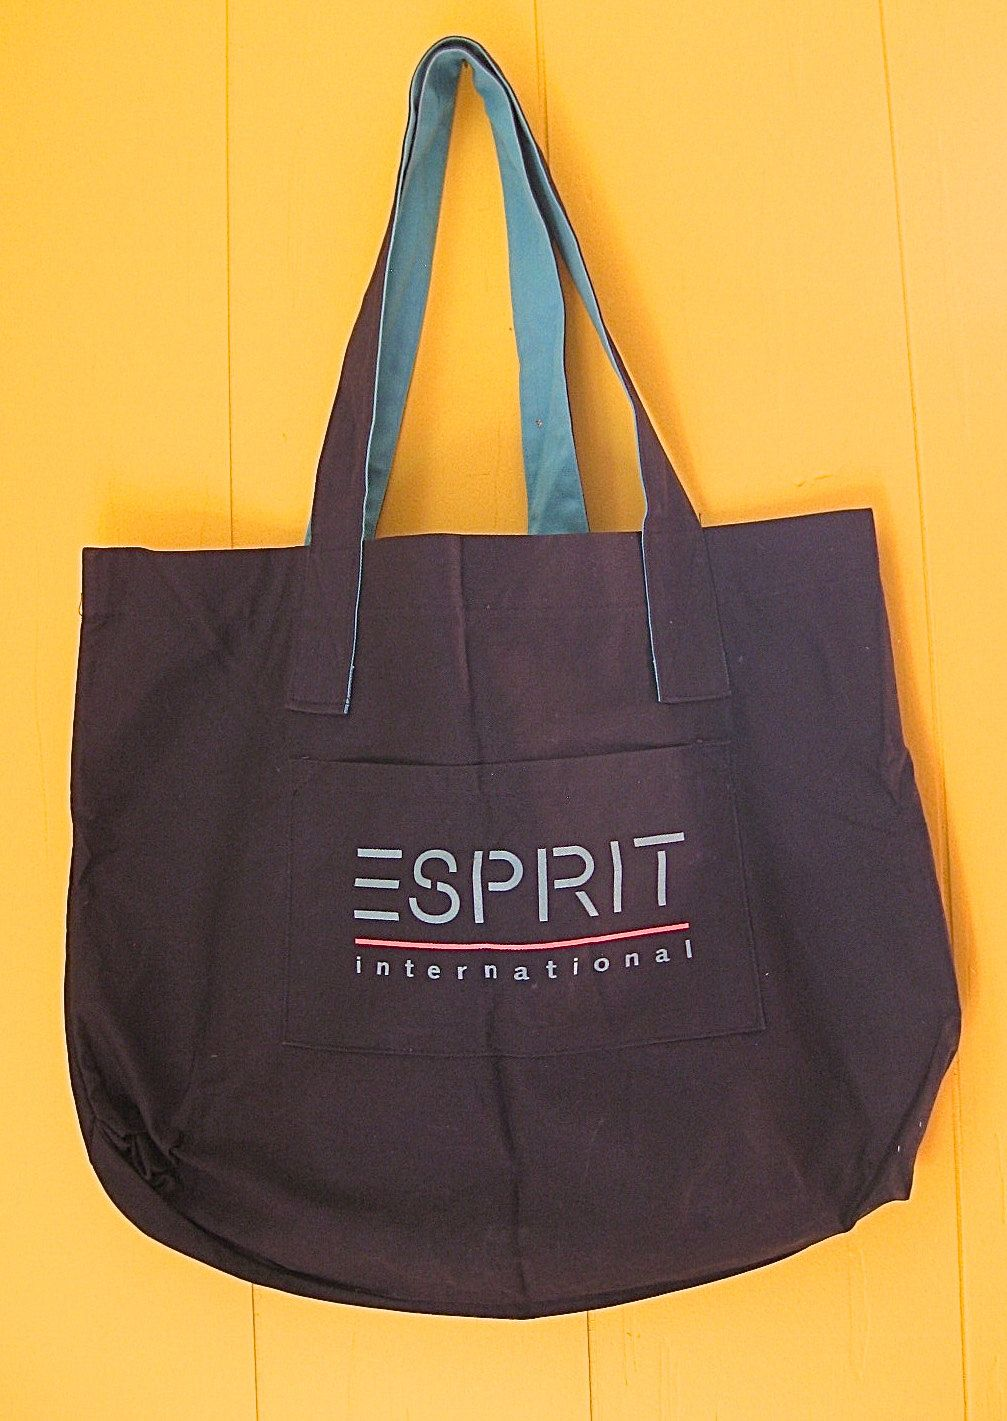 7a92b35962f8 Vintage 90s Esprit Bag Canvas Tote Bag Large Cotton Esprit Bag ...